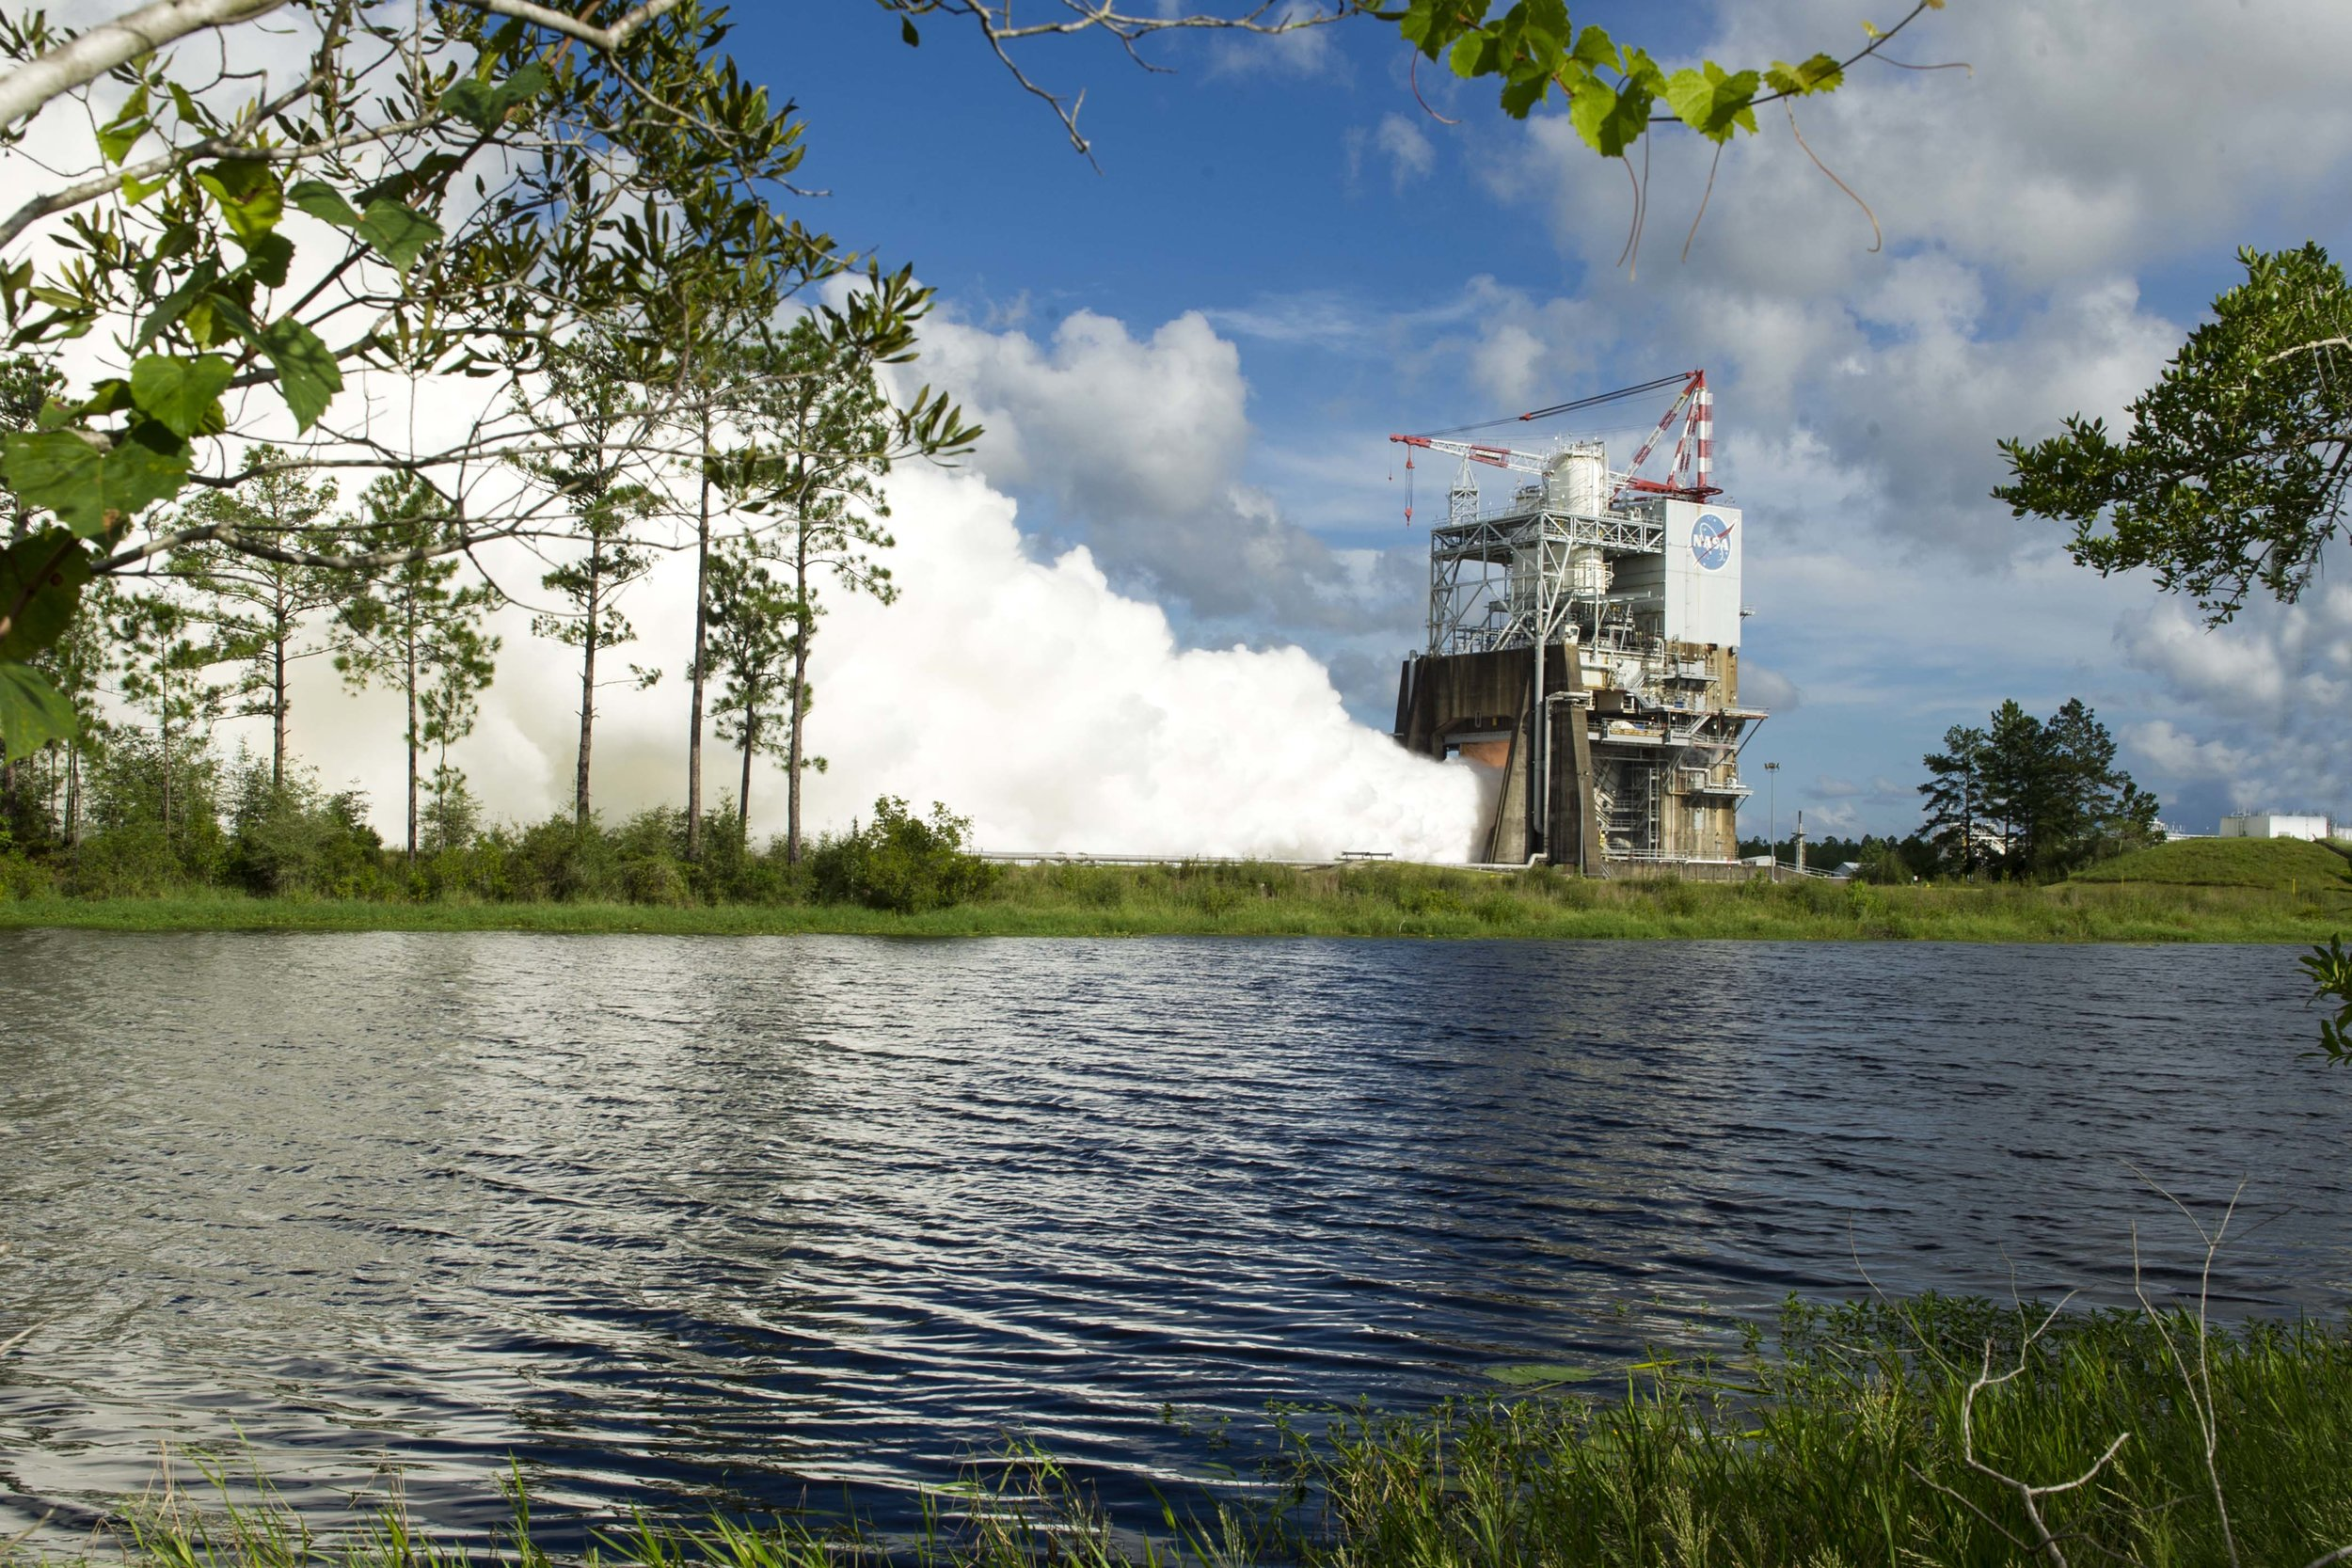 s16-081_ssc-20160818-s00653_rs-25_engine_test.jpg